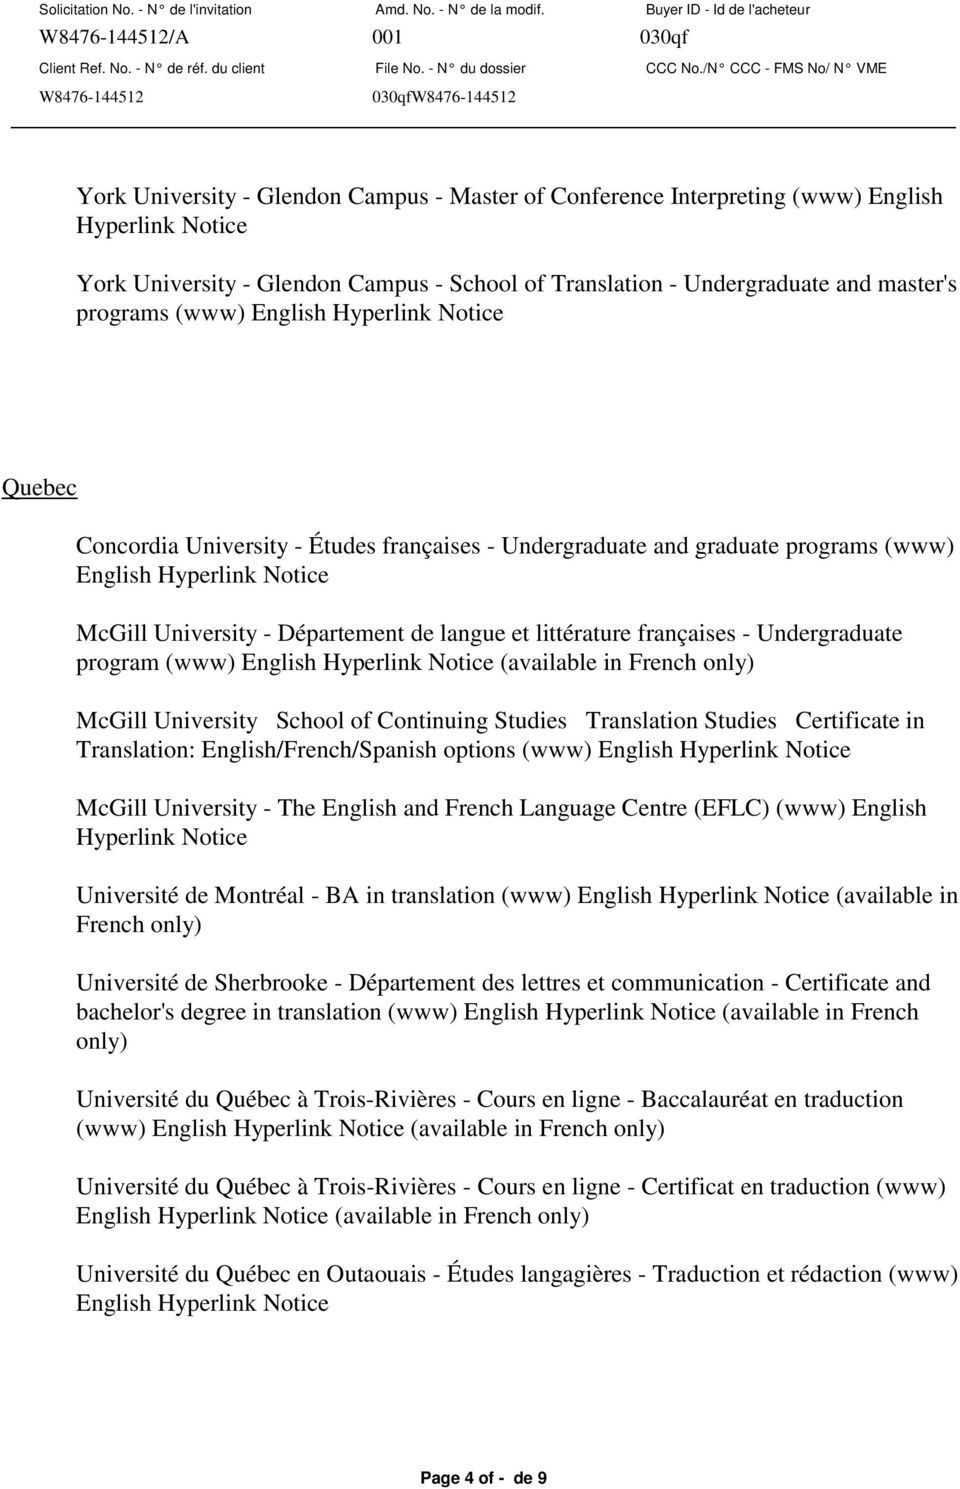 littérature françaises - Undergraduate program (www) English Hyperlink Notice (available in French only) McGill University School of Continuing Studies Translation Studies Certificate in Translation: